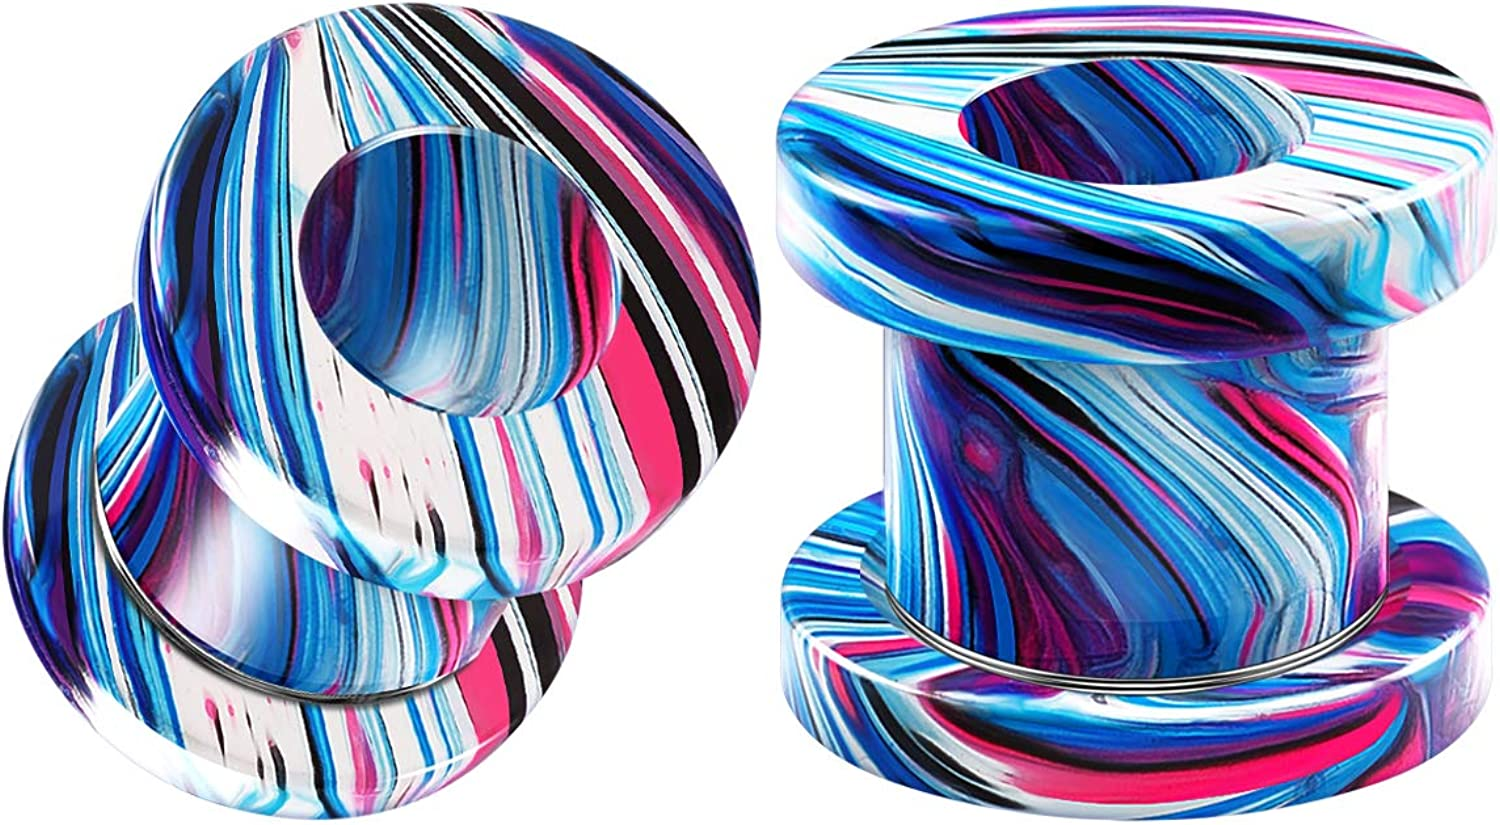 BIG GAUGES Pair of Cash special price Max 89% OFF Screw Anodized Tunnels Piercing Jewel Painted